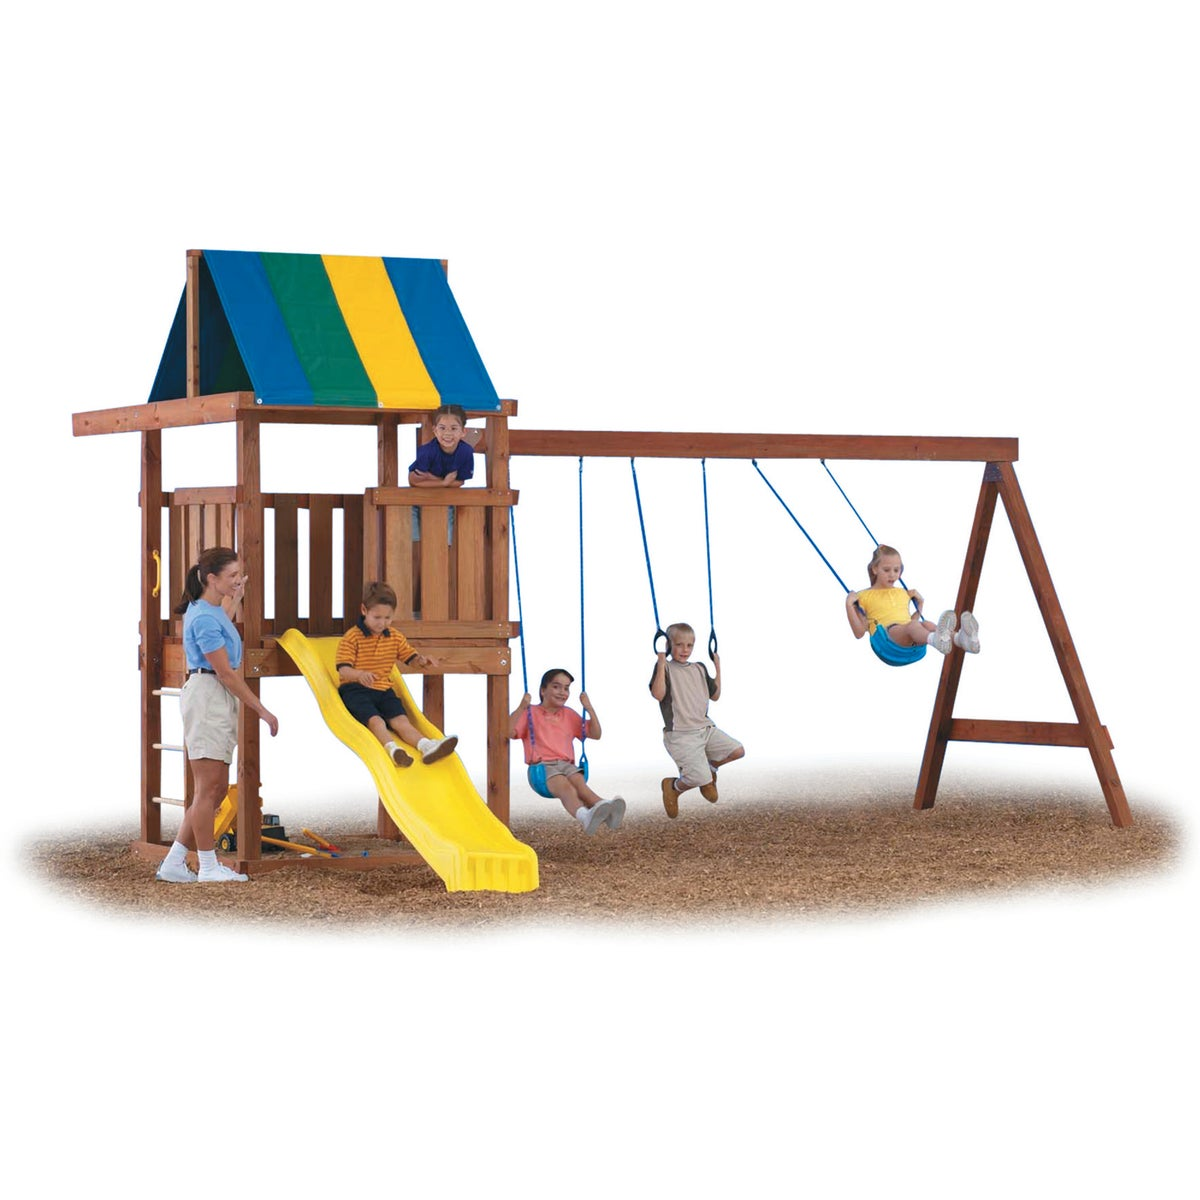 WRANGLER PLAYGROUND KIT